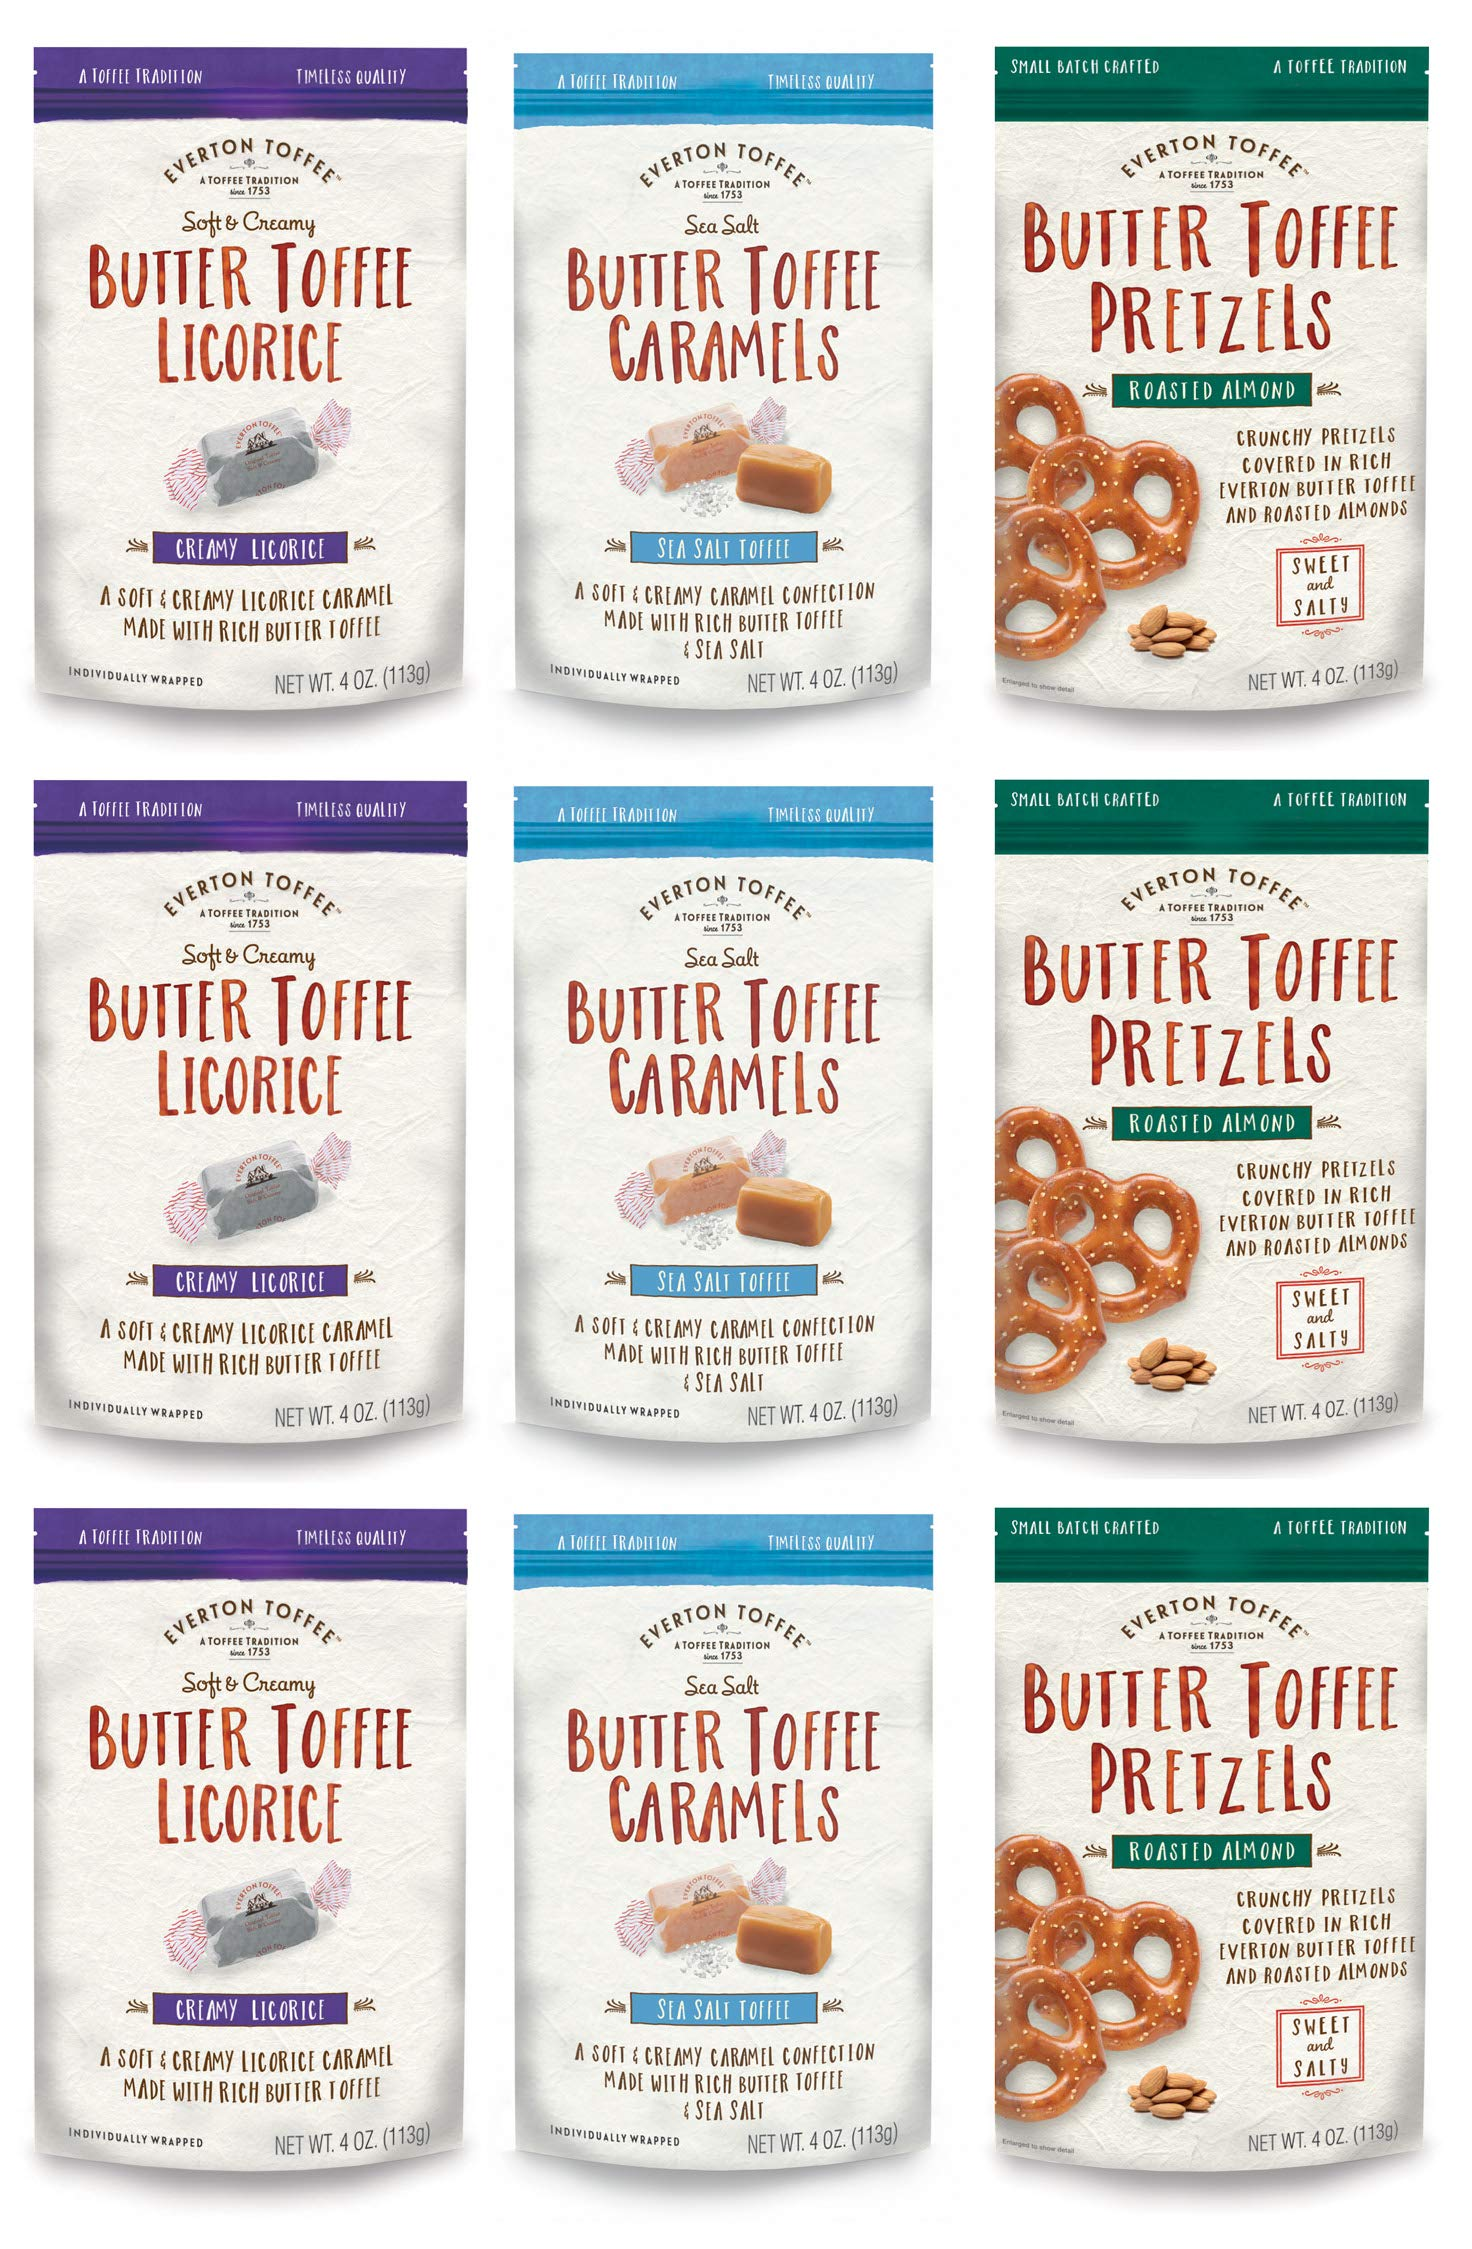 Everton Toffee Butter Toffee Caramels & Pretzels, Taster's Variety Pack (4 oz bag, 9-Pack); Gourmet, Artisan Soft Creamy Caramels - Licorice and Sea Salt Flavors and Roasted Almond Mini Pretzel Snack by Everton Toffee